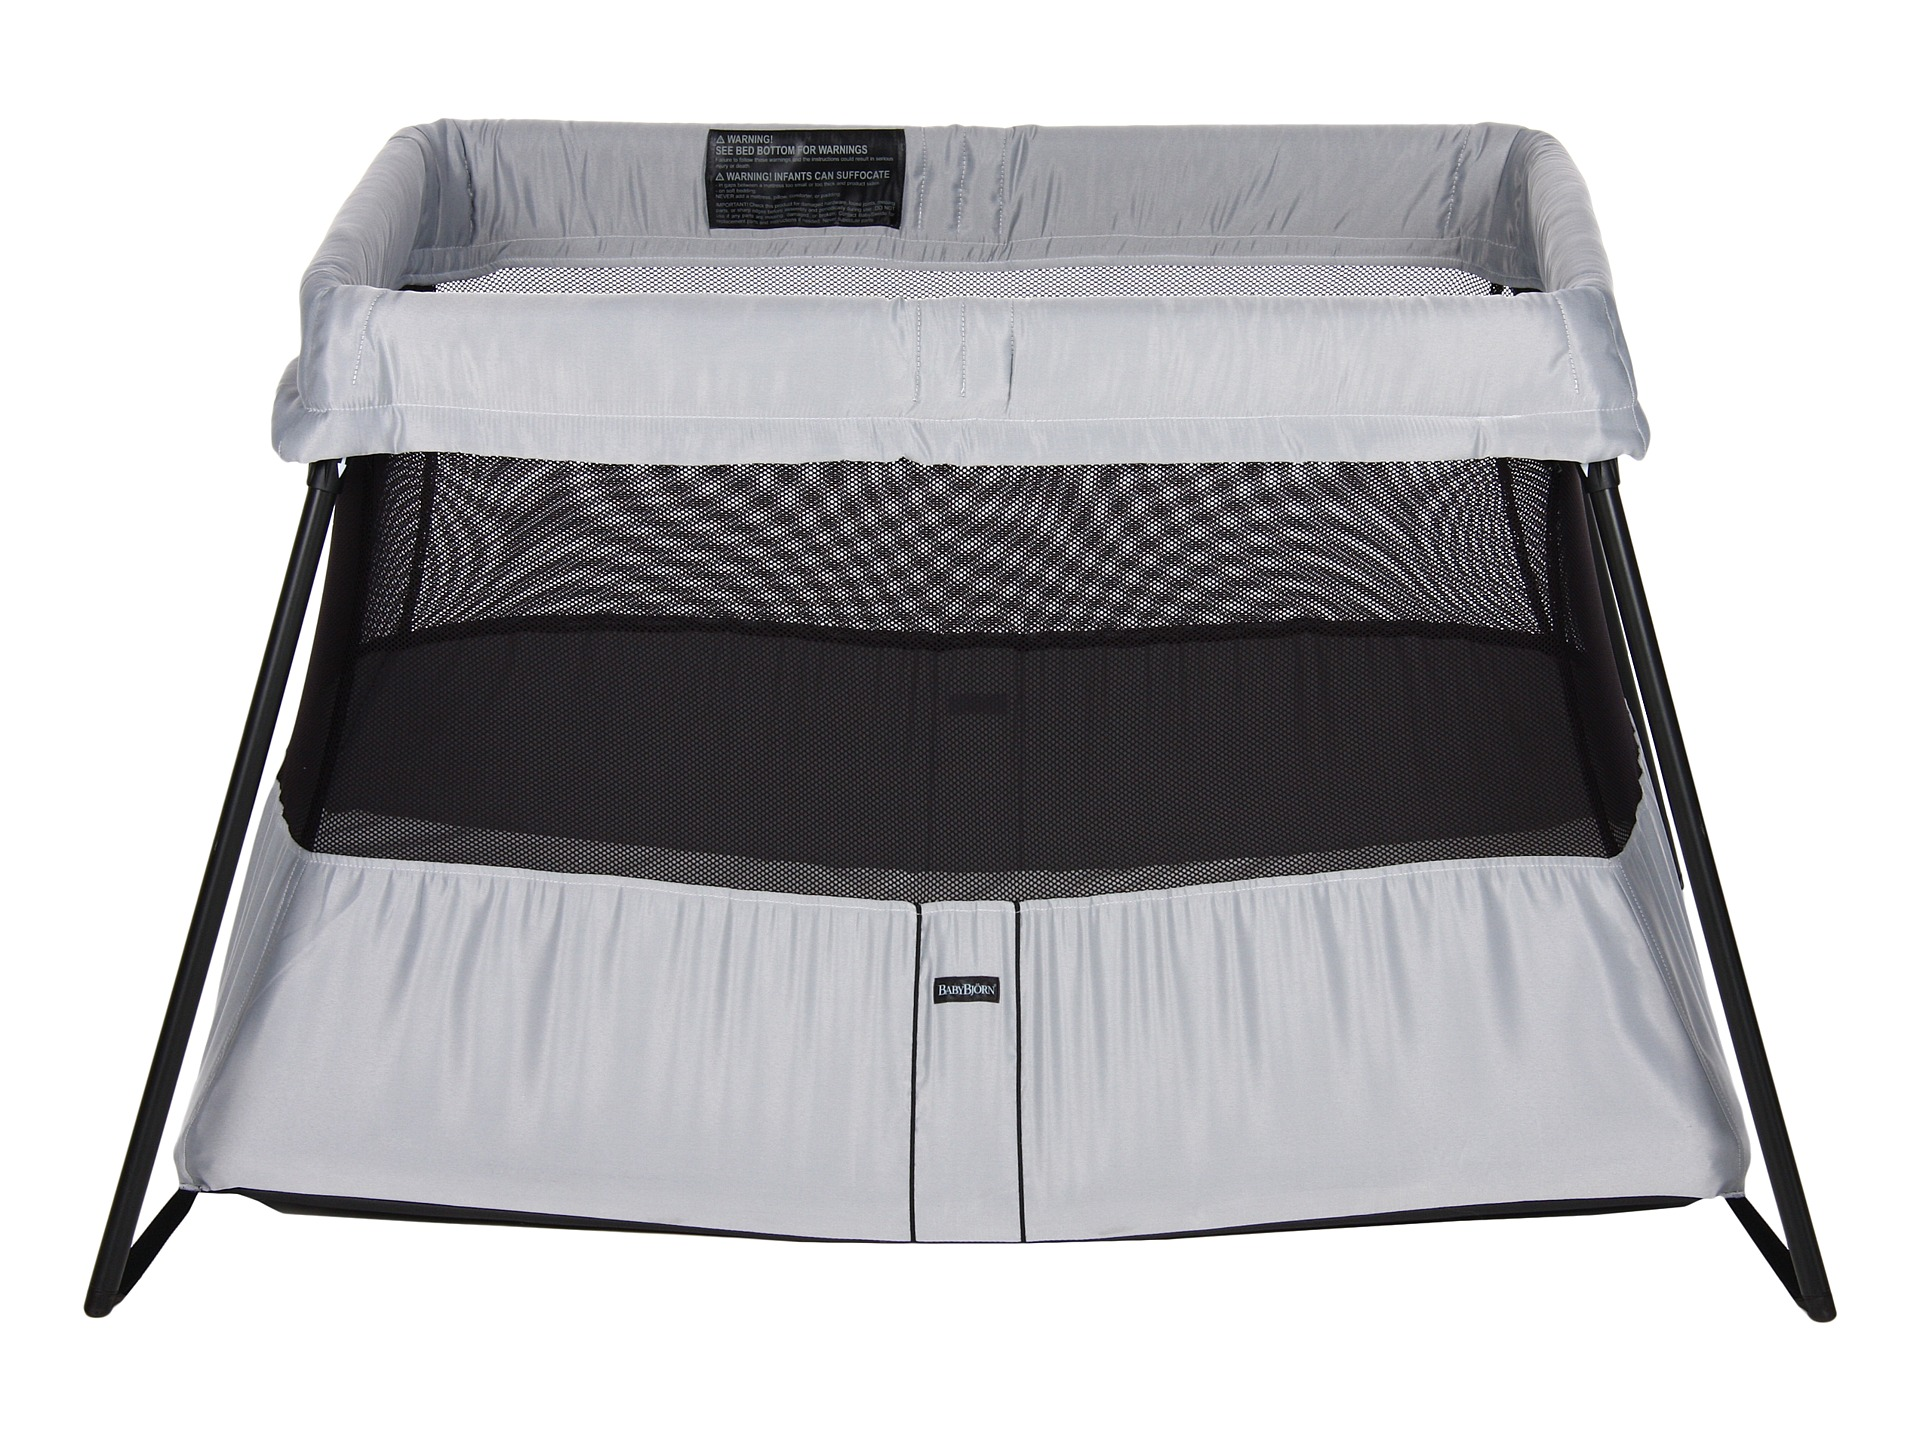 babybjorn travel crib light babybjorn blue shipped free at zappos. Black Bedroom Furniture Sets. Home Design Ideas